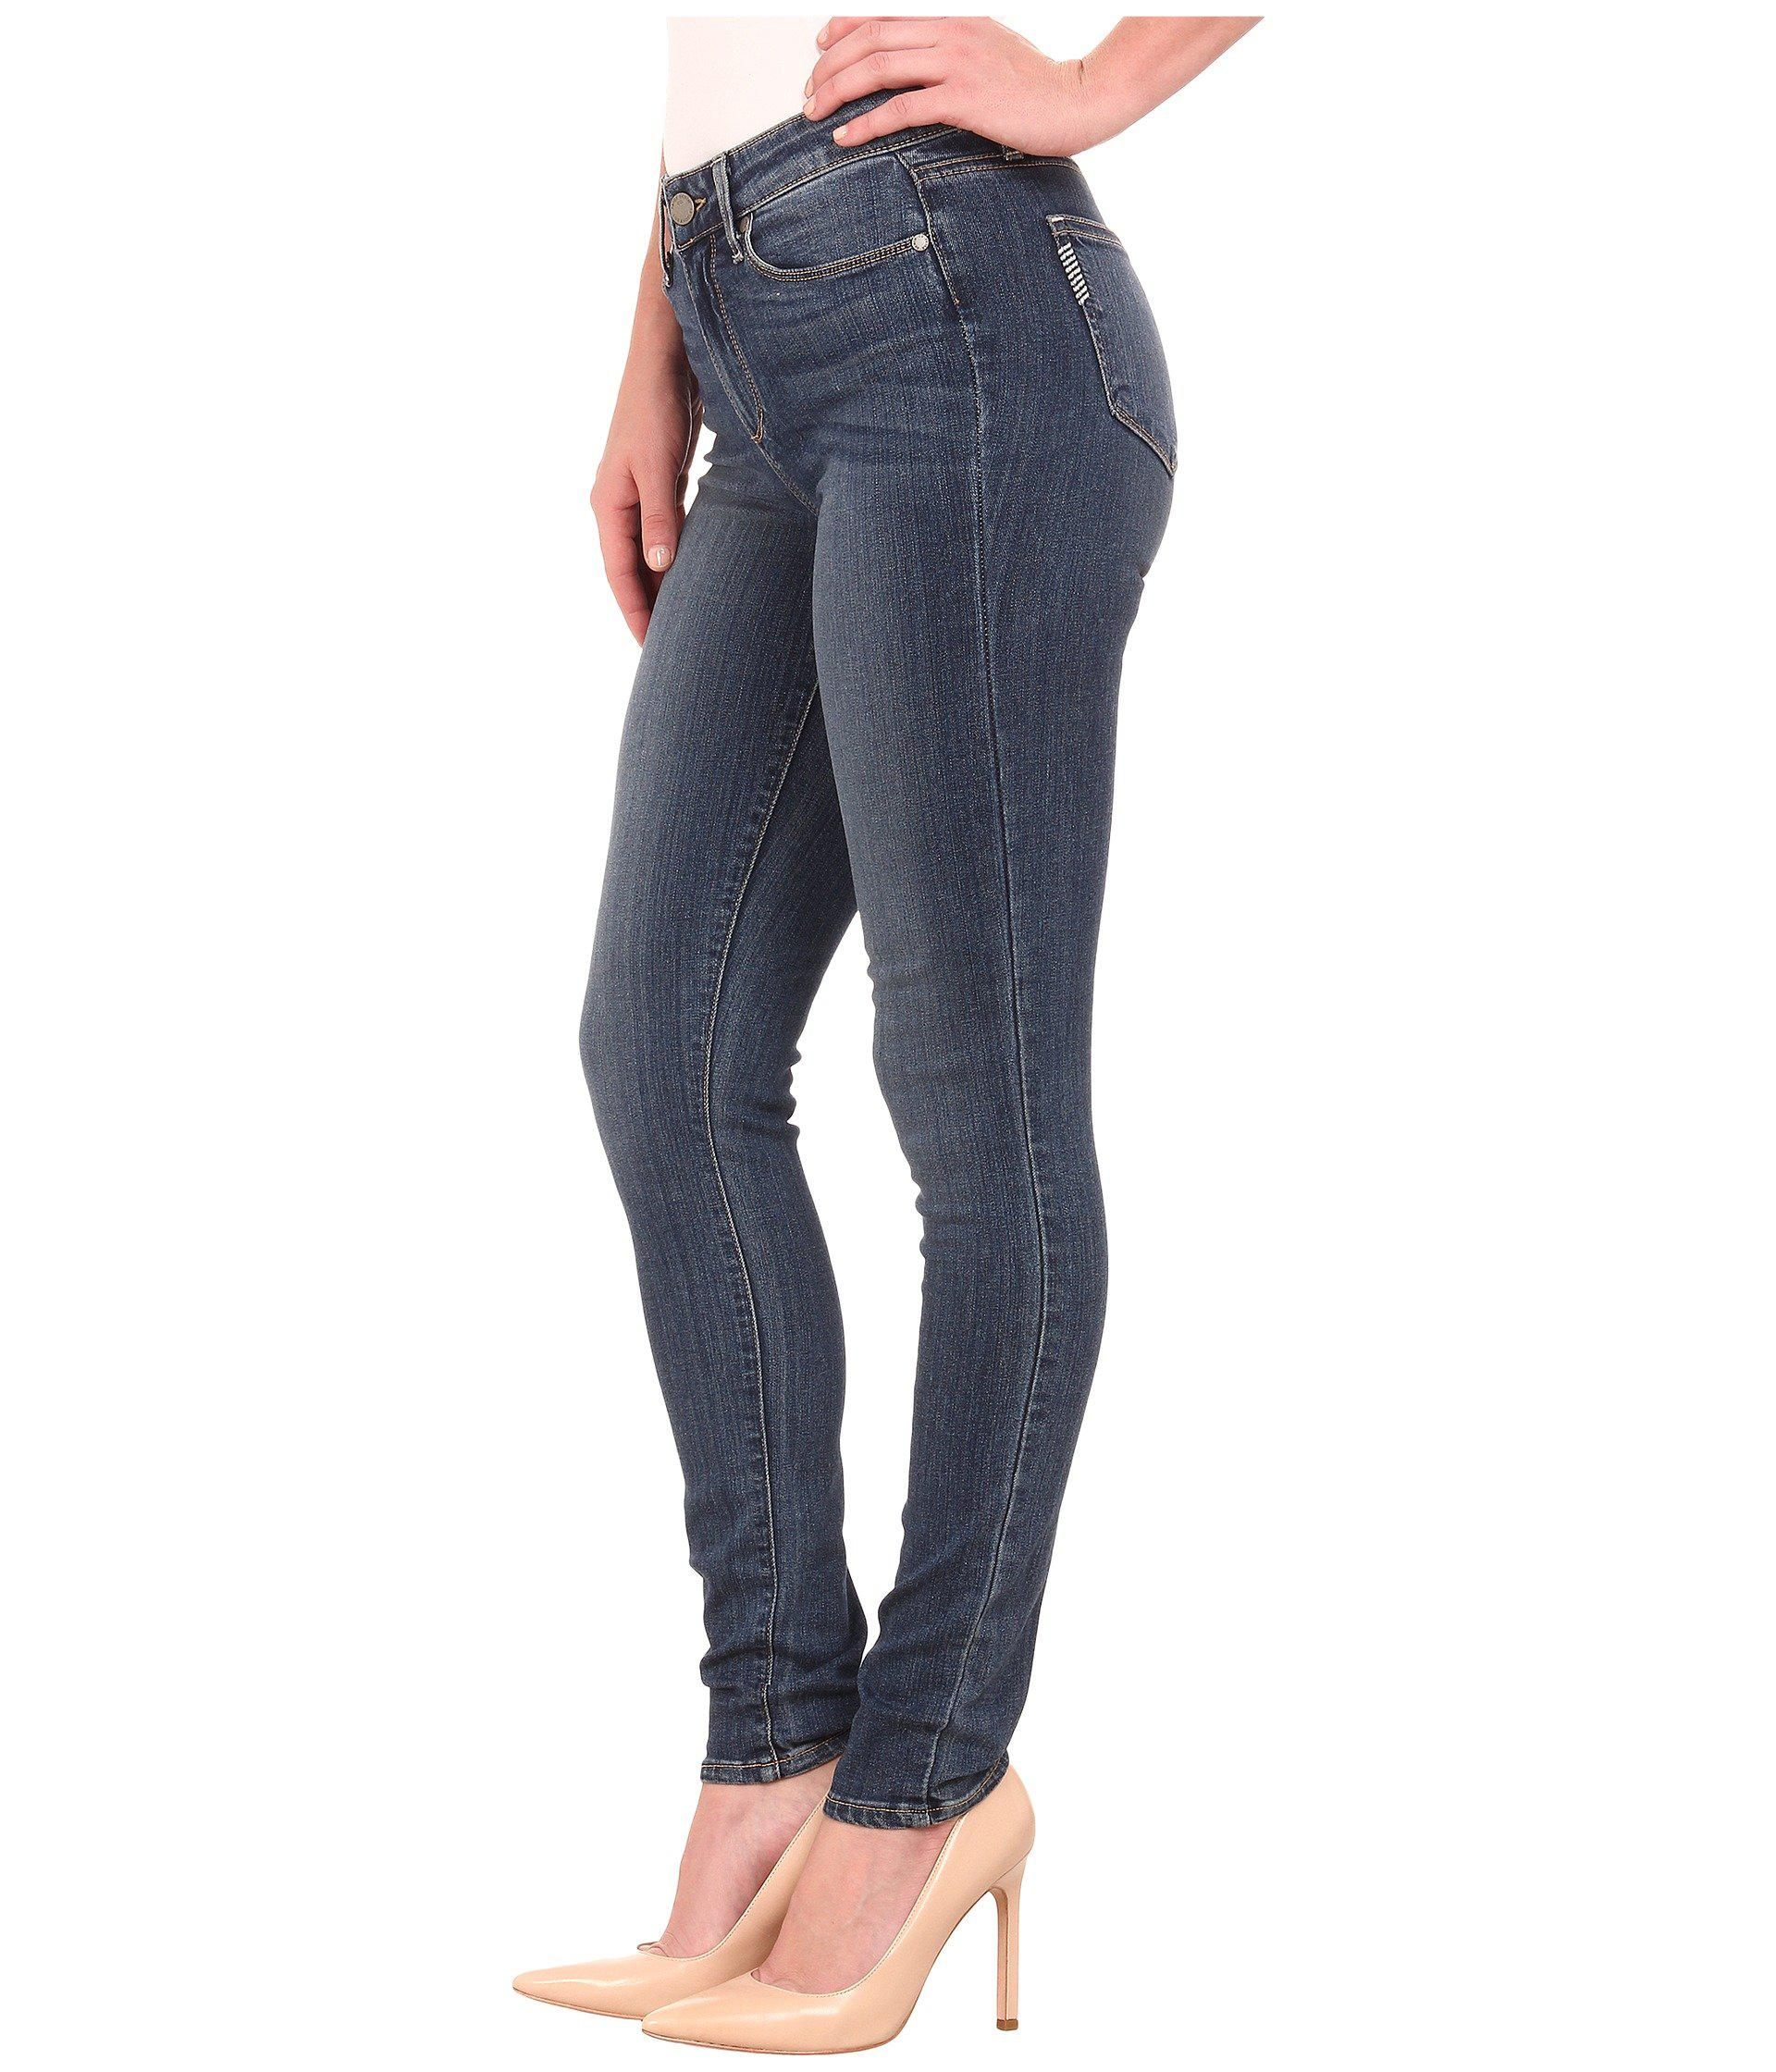 660361f5486 PAIGE Hoxton Ultra Skinny In Tristan (tristan) Women's Jeans in Blue - Save  66% - Lyst